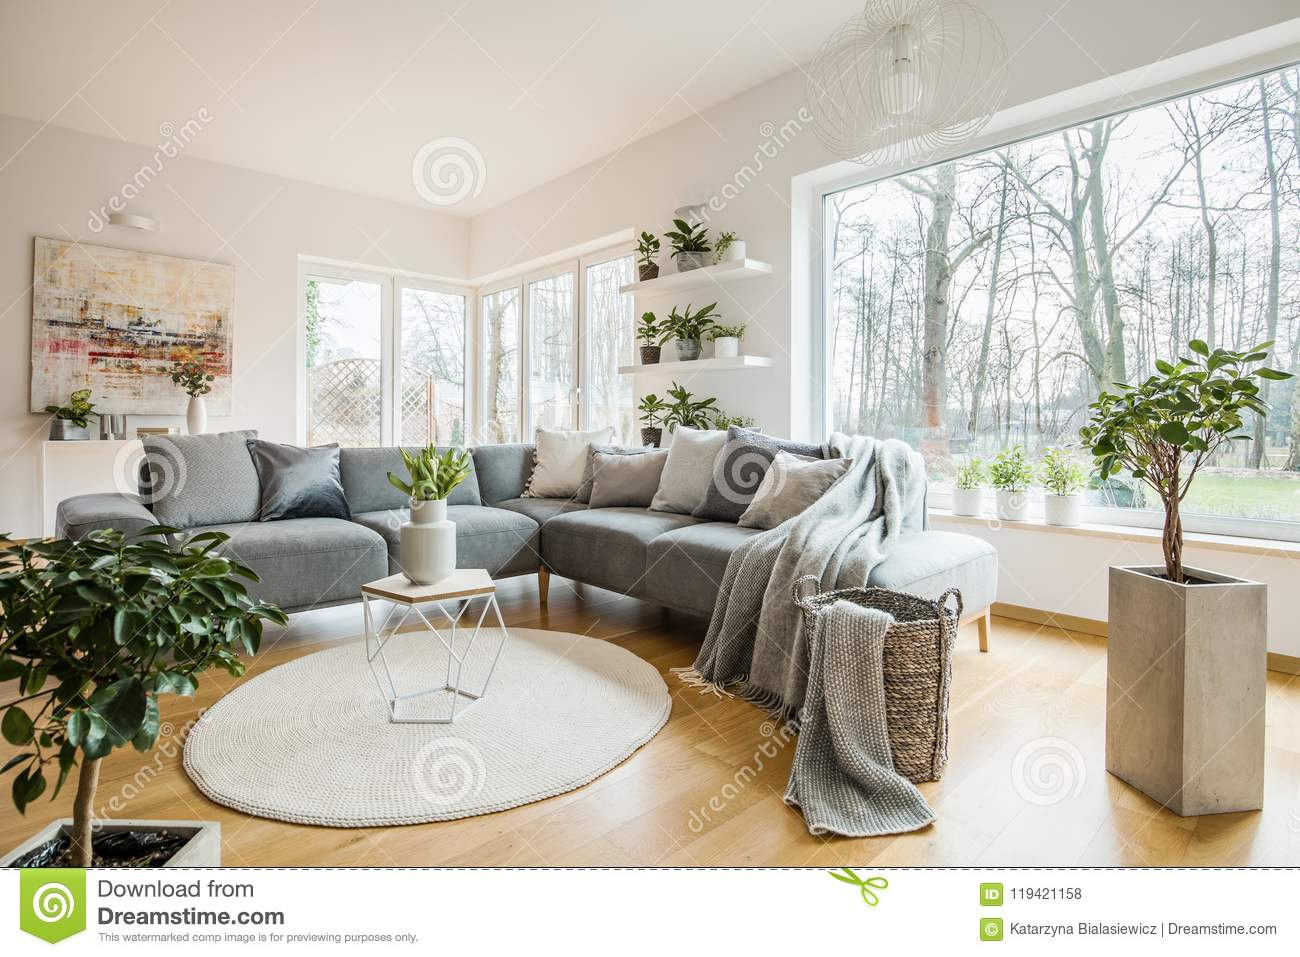 Fresh green plants in white living room interior with corner sofa with pillows and blanket, glass door and small table with tulips